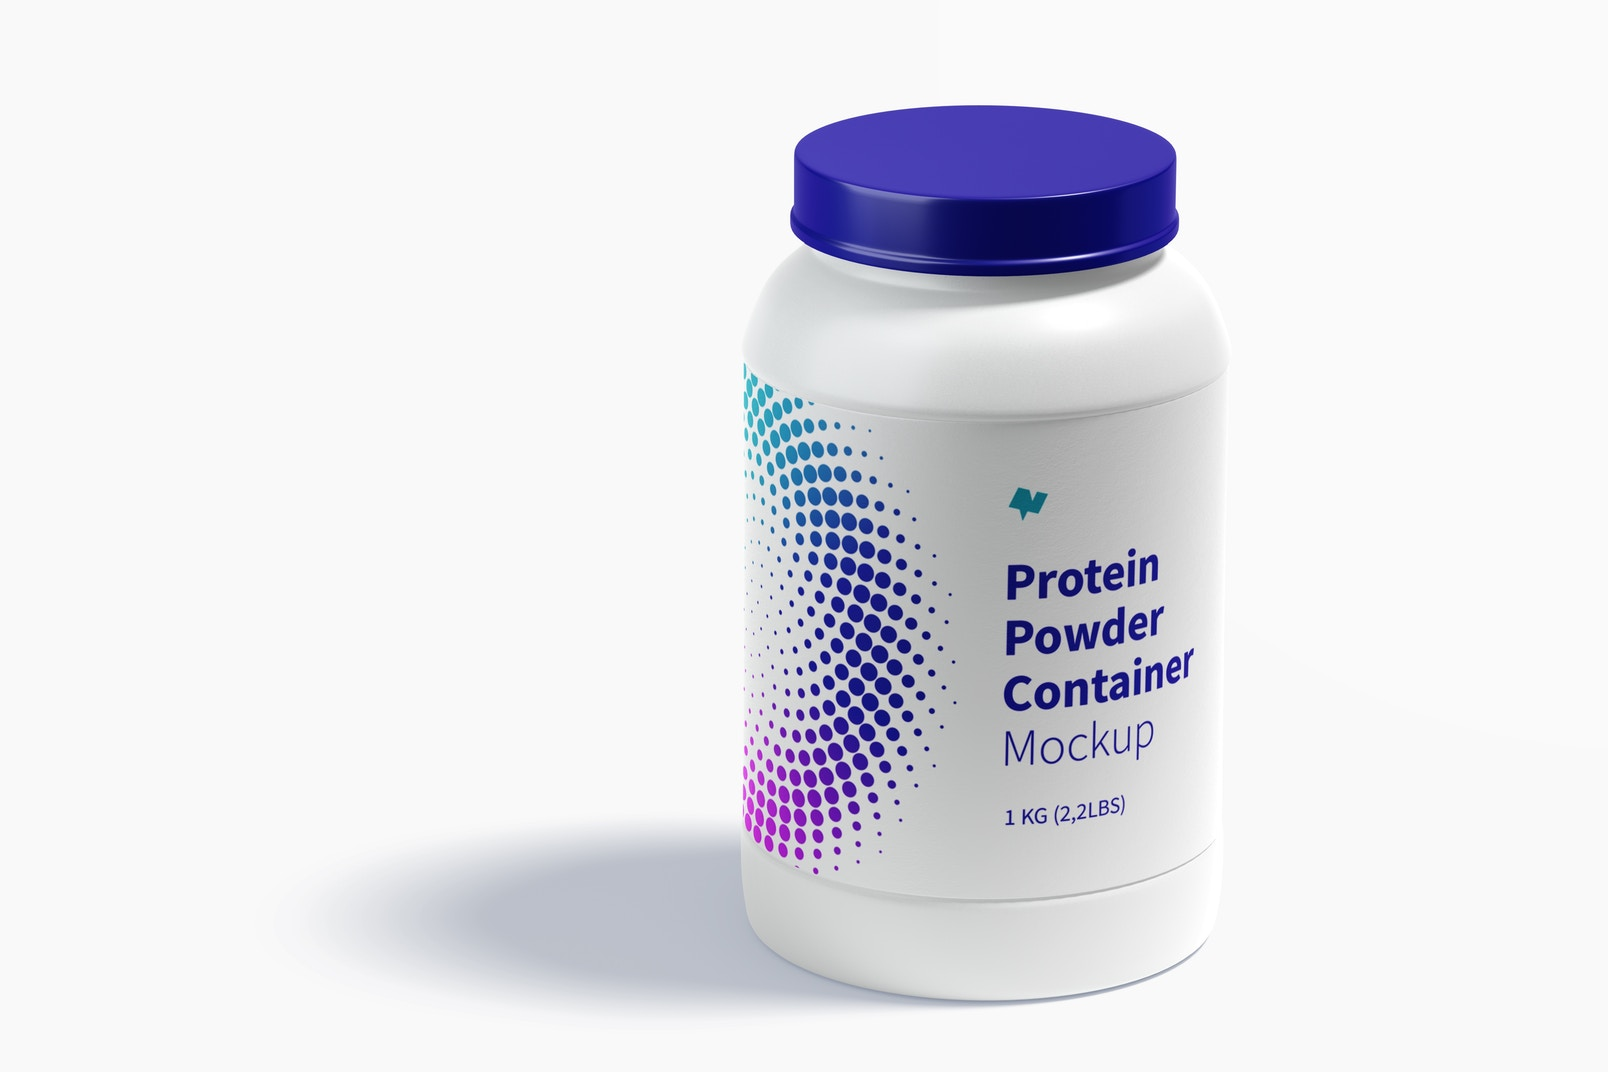 Protein Powder Container Mockup, Closed